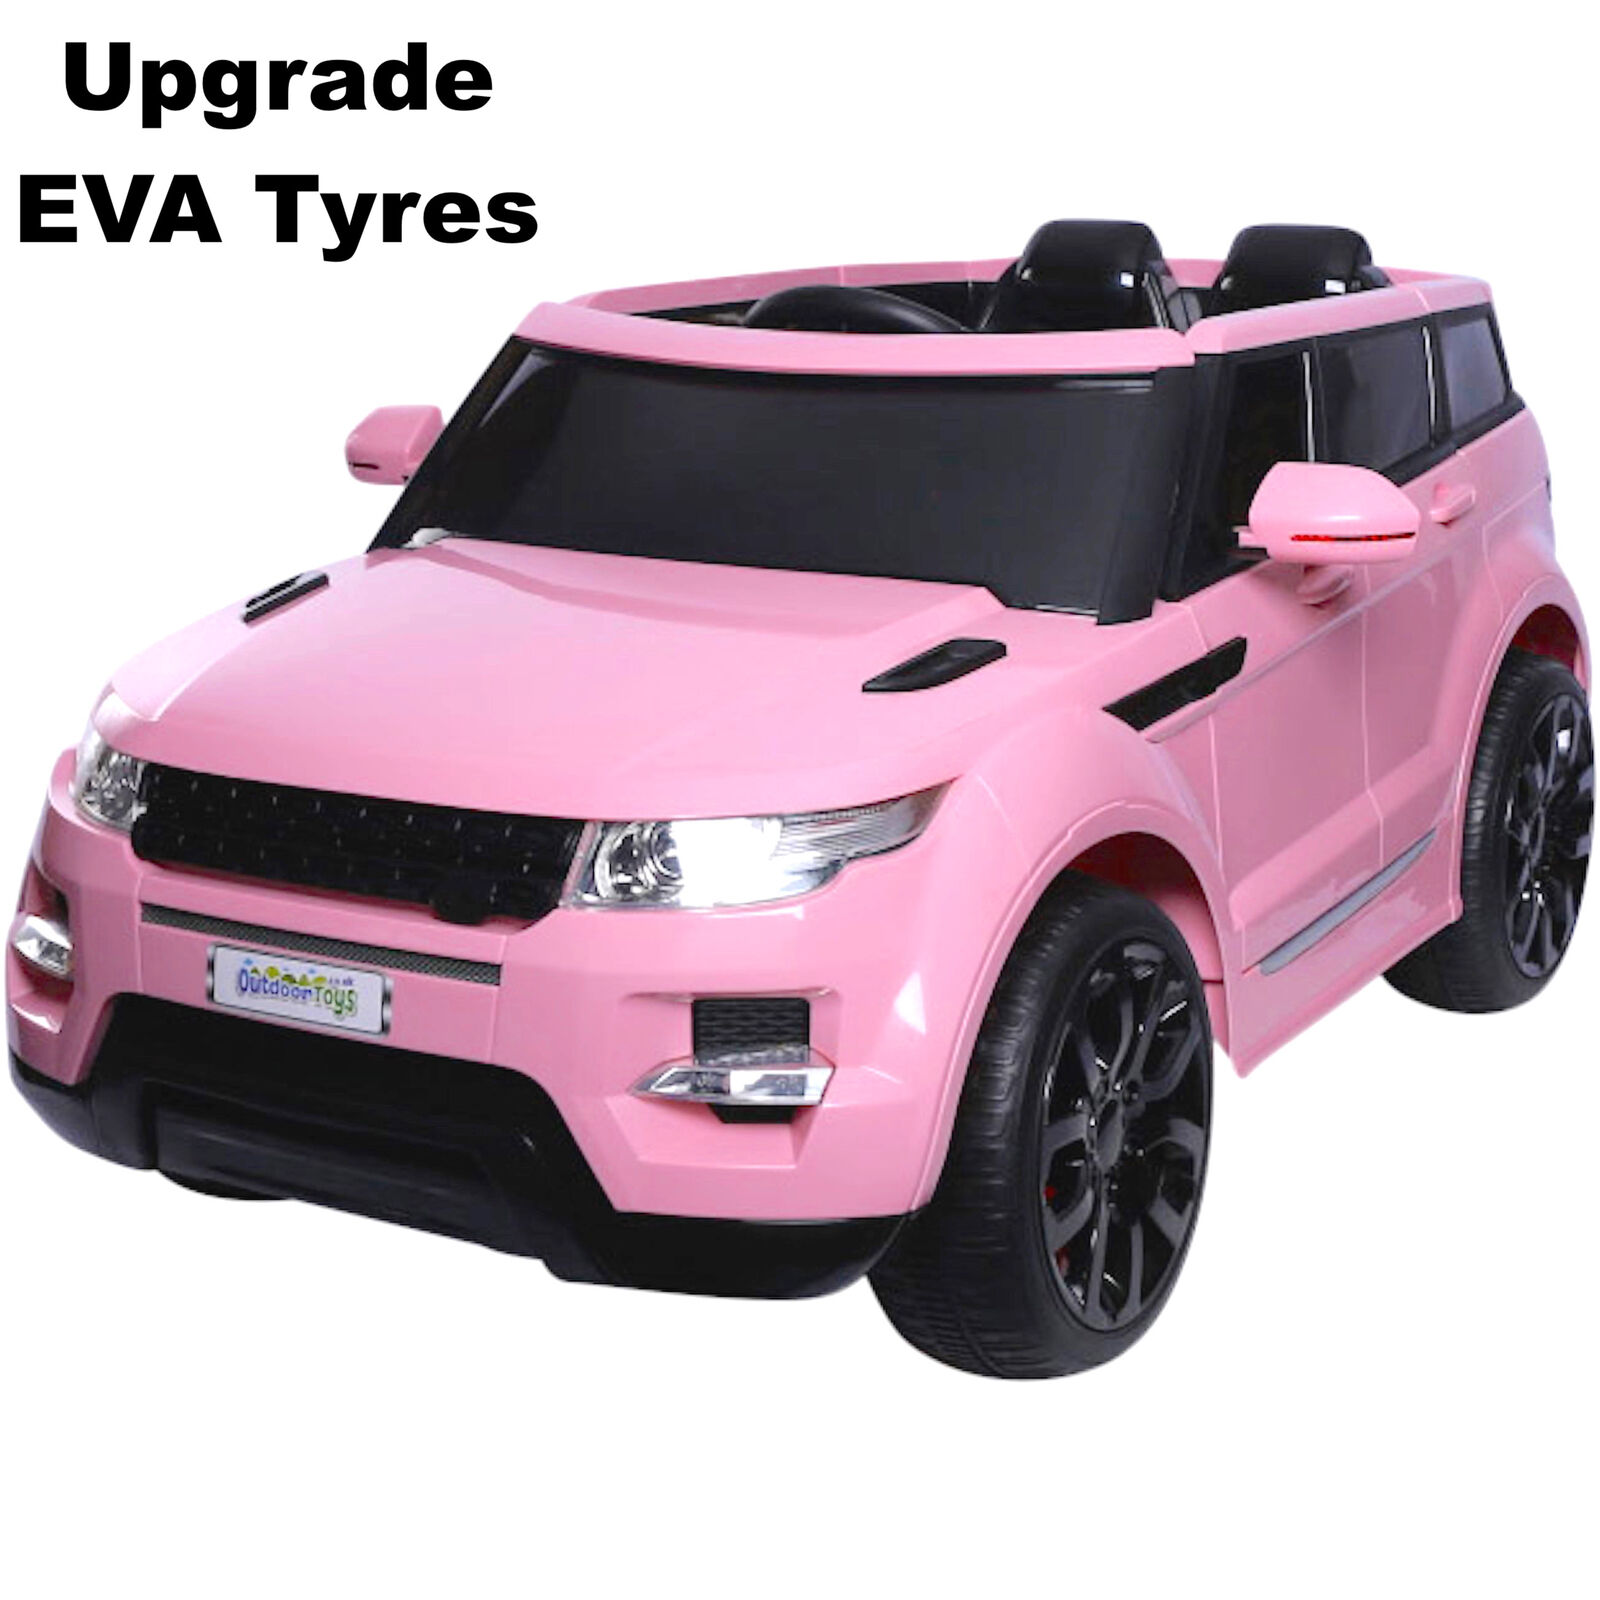 Maxi HSE Sport Style 12V Electric Battery Ride on Jeep - Pink EVA